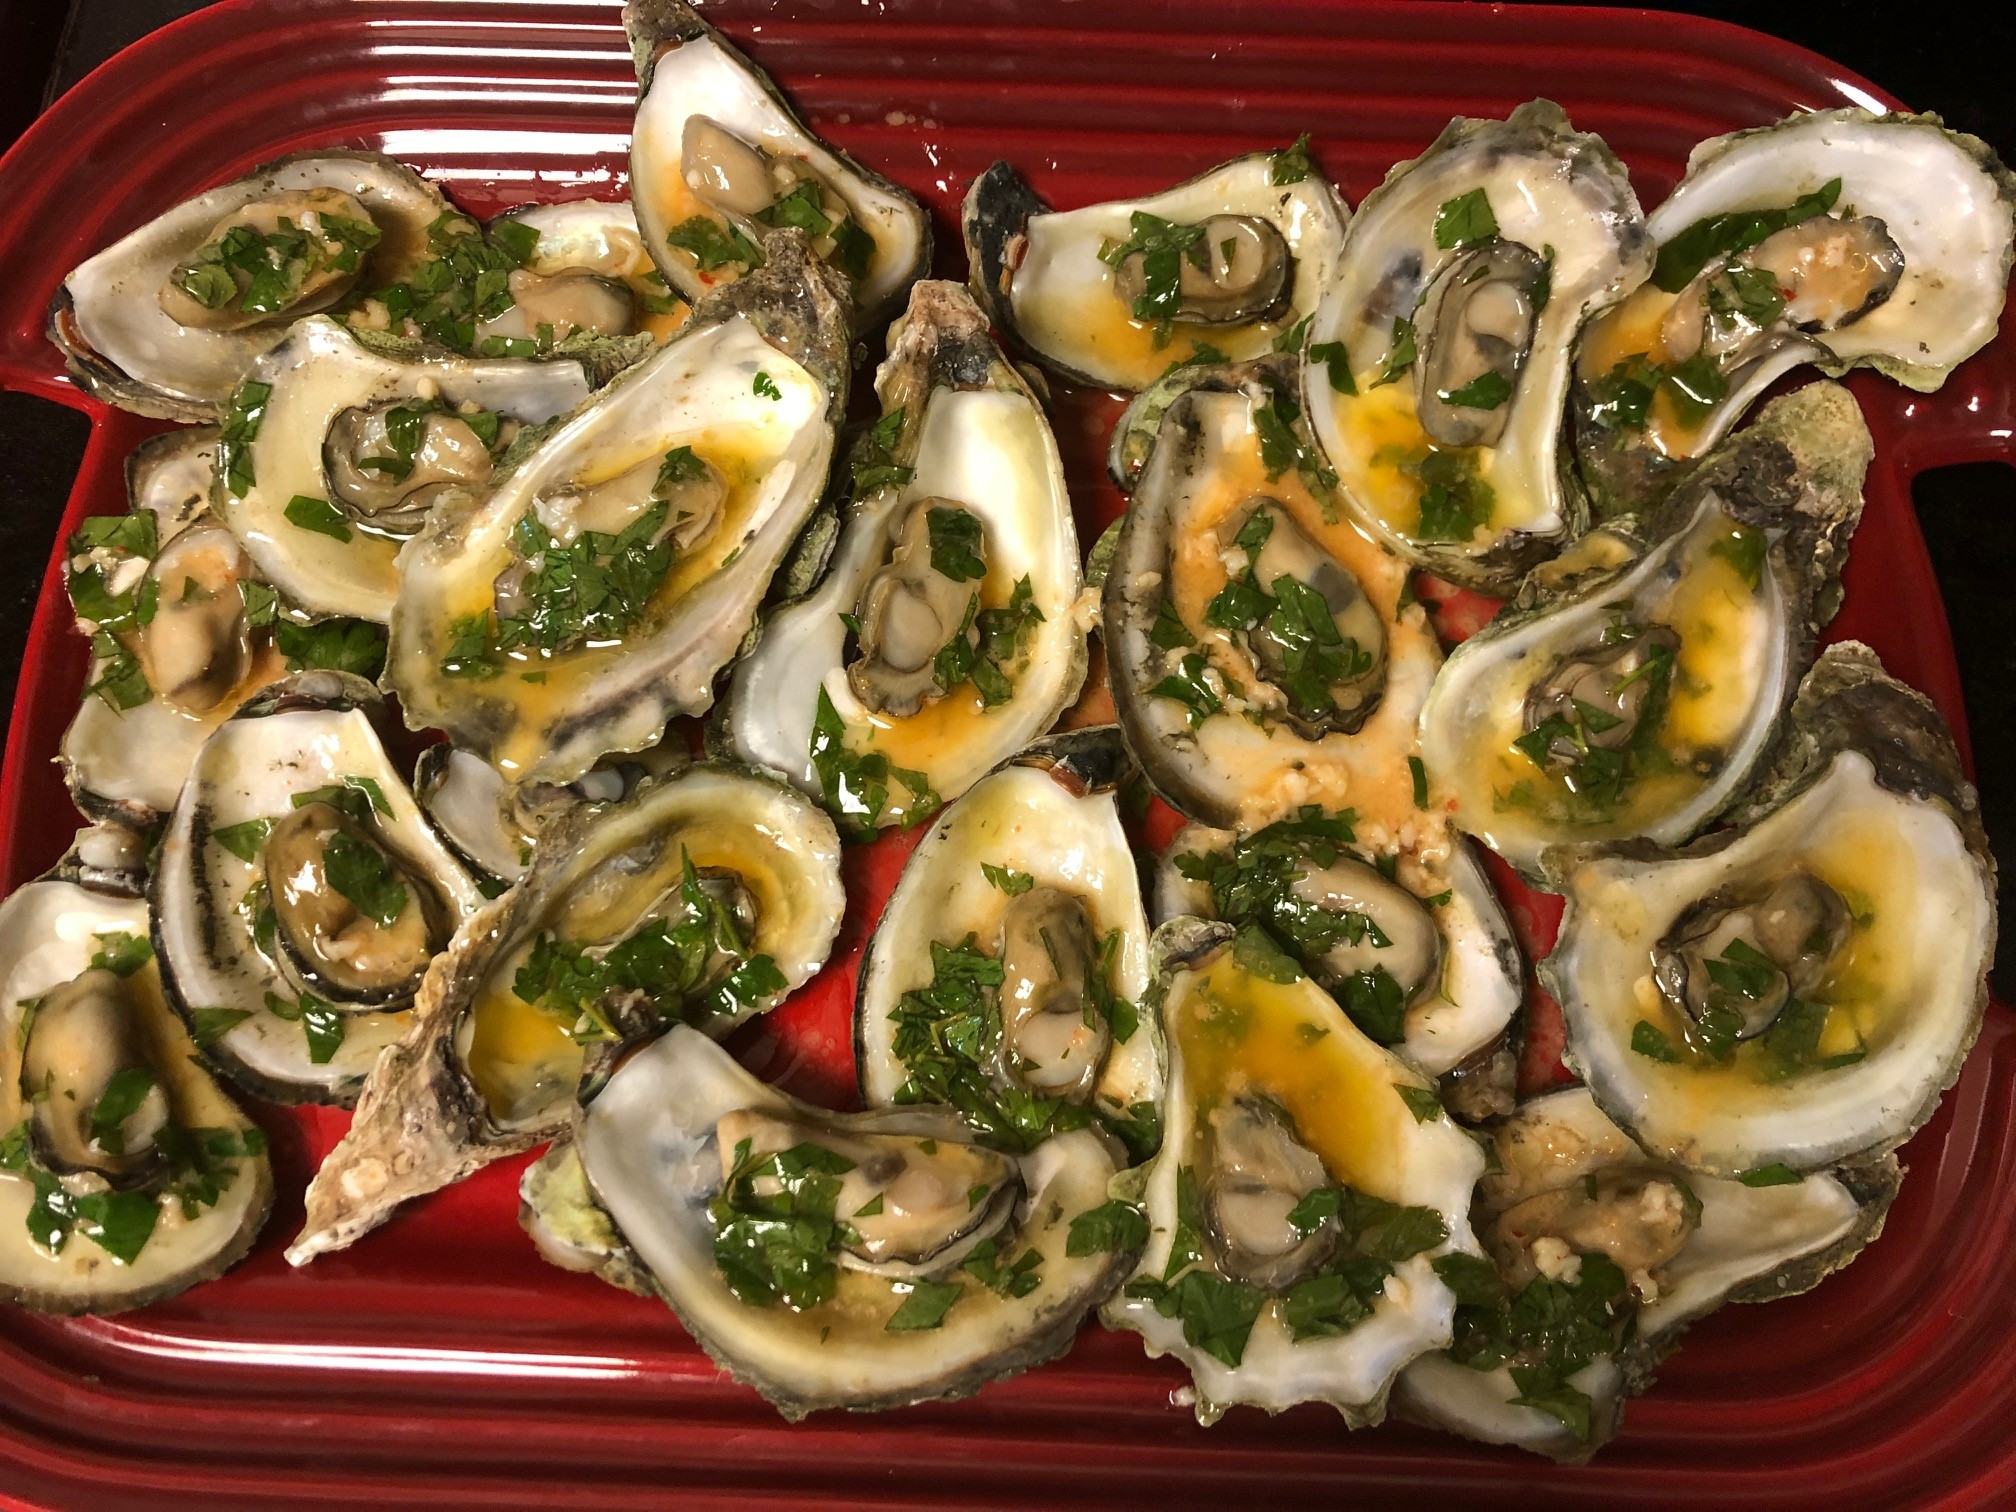 Steamed Oysters in the Instant Pot